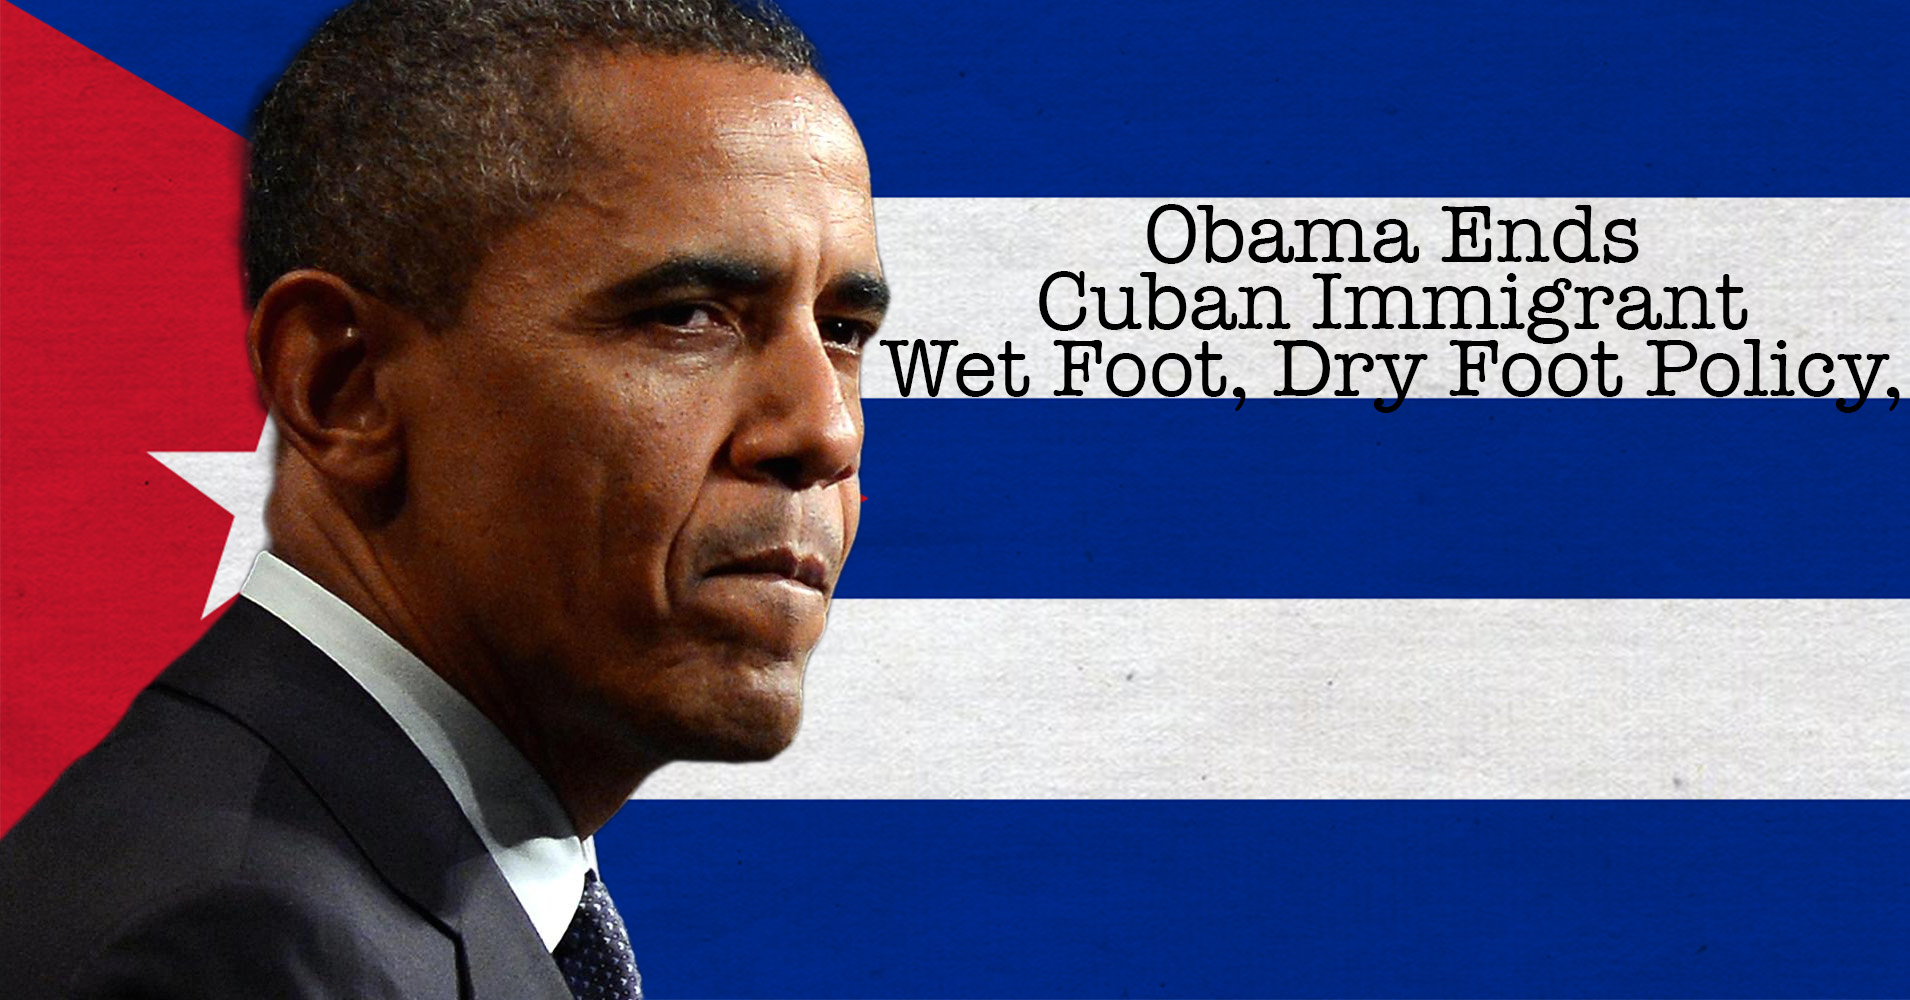 Obama Ends Cuban Immigrant Wet Foot, Dry Foot Policy, But Why?